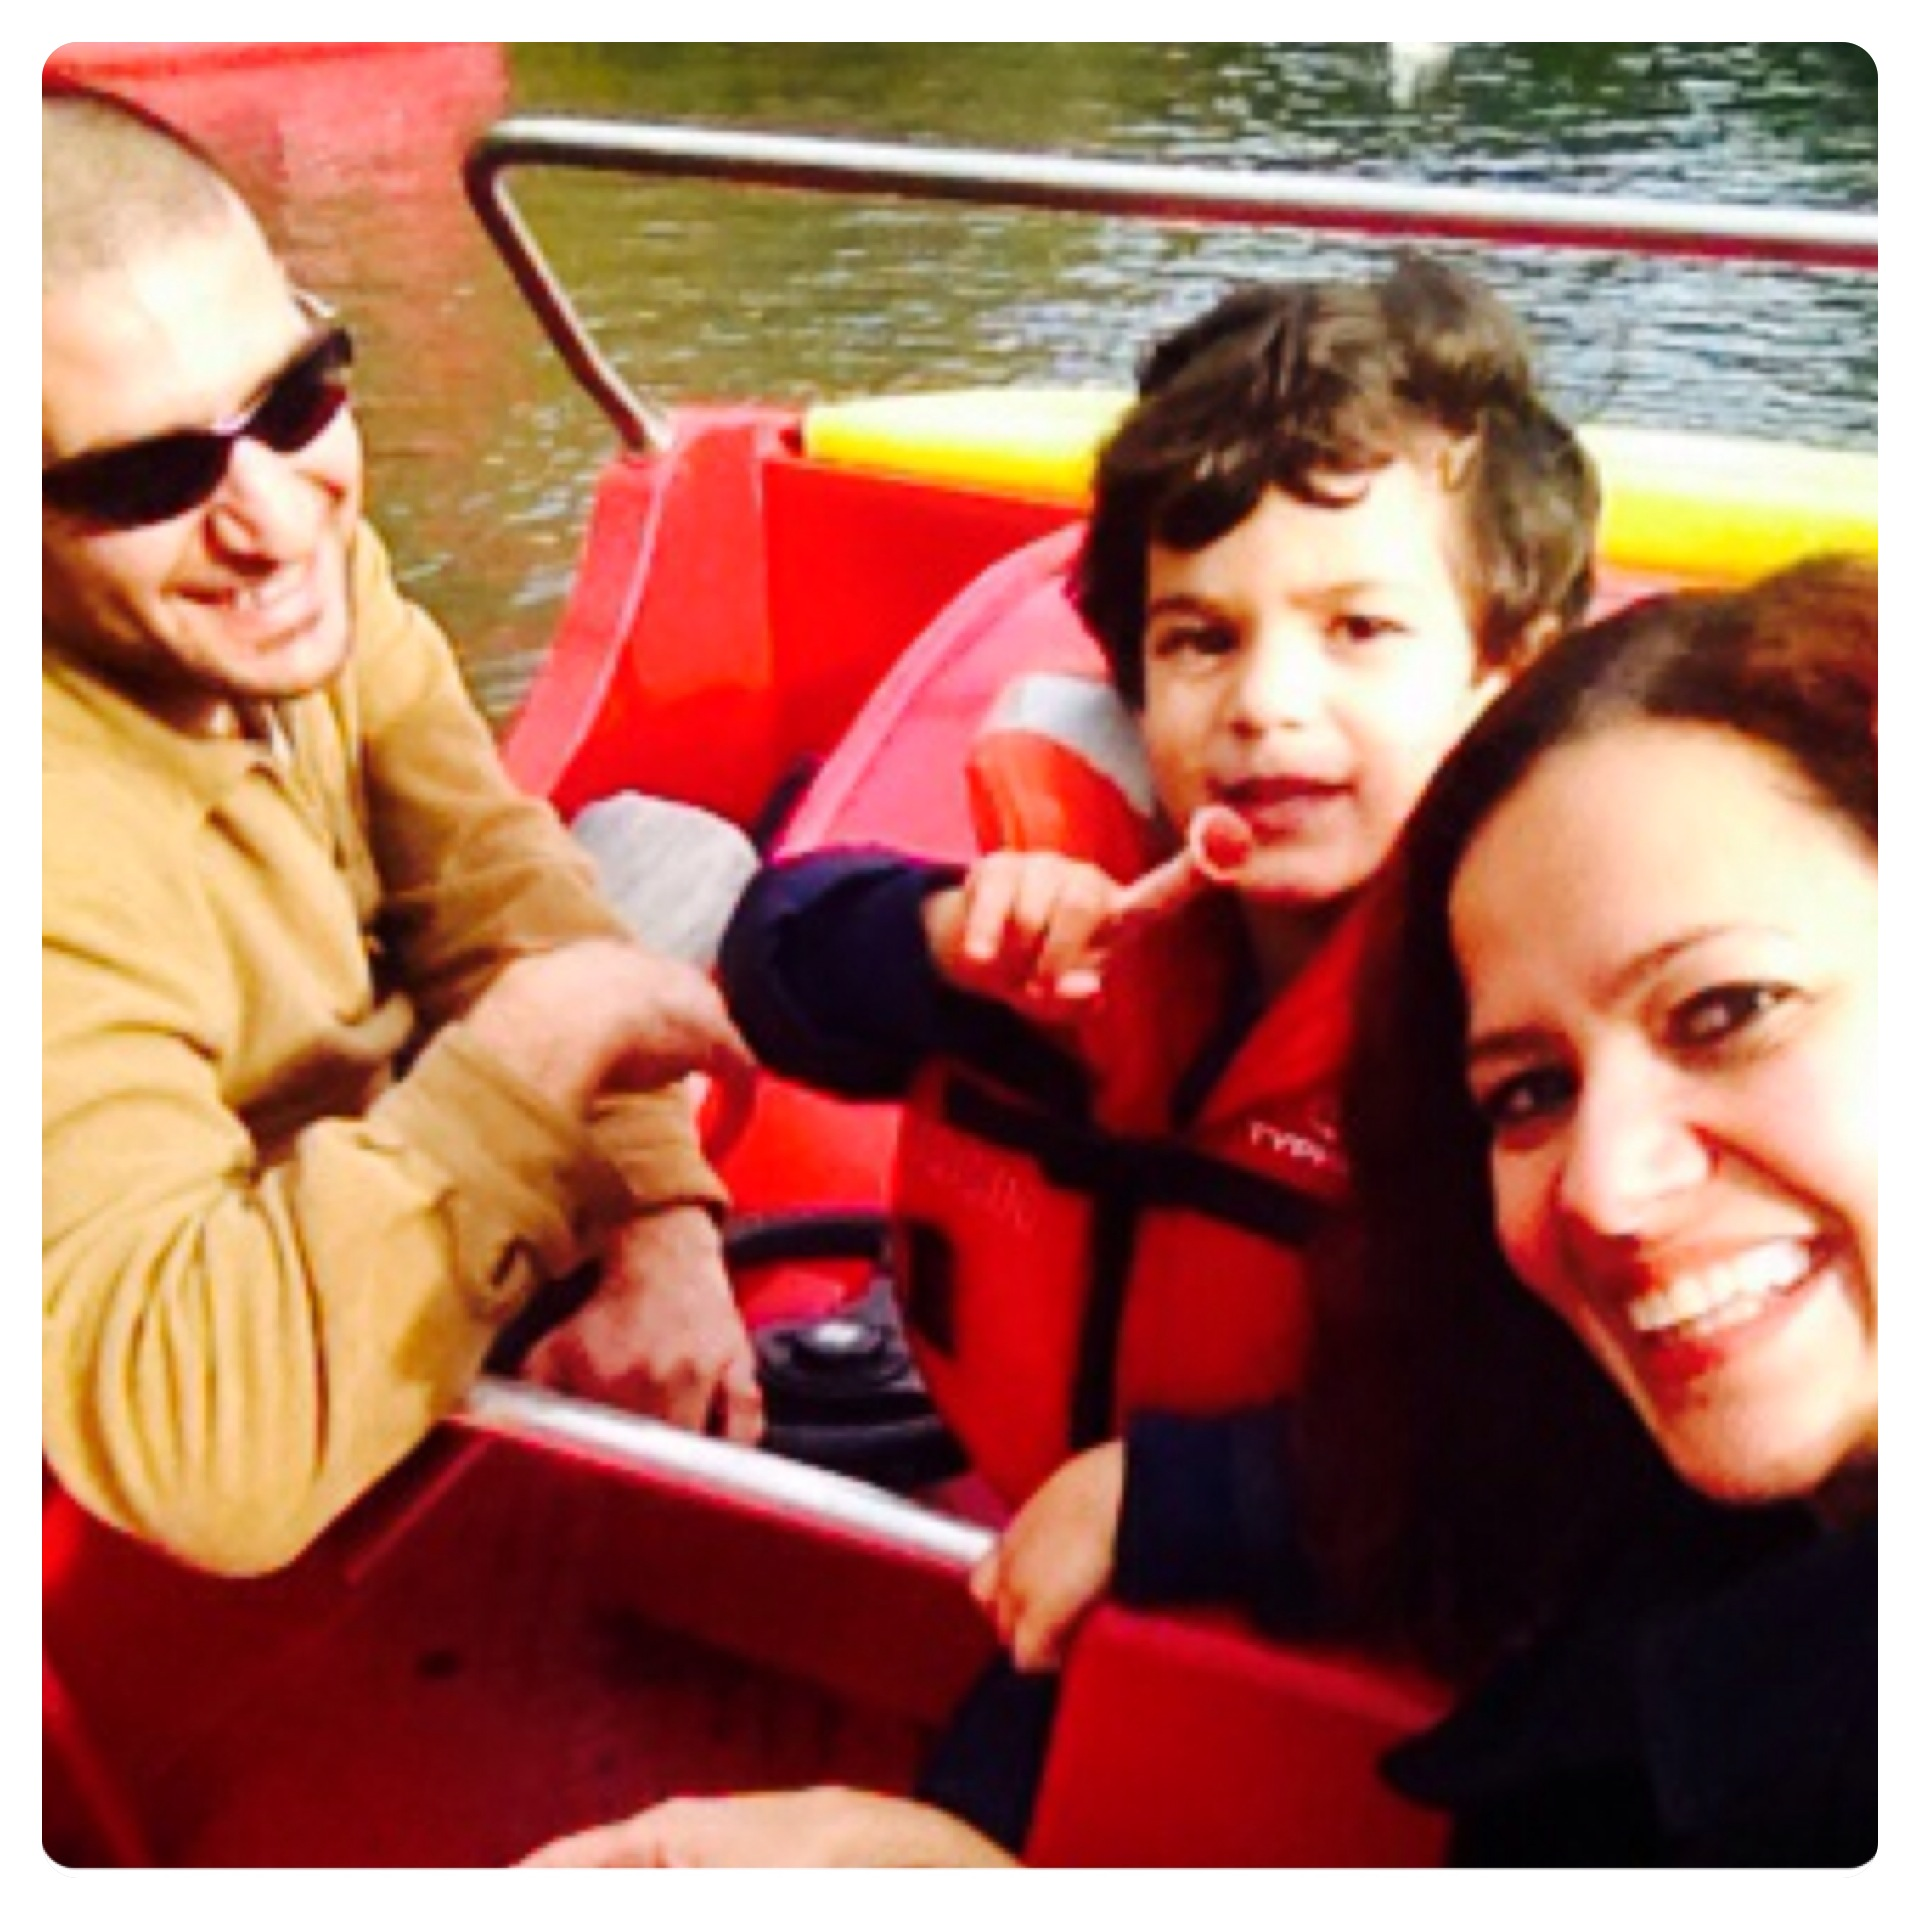 Pedalling Family Fun Day at the Lake